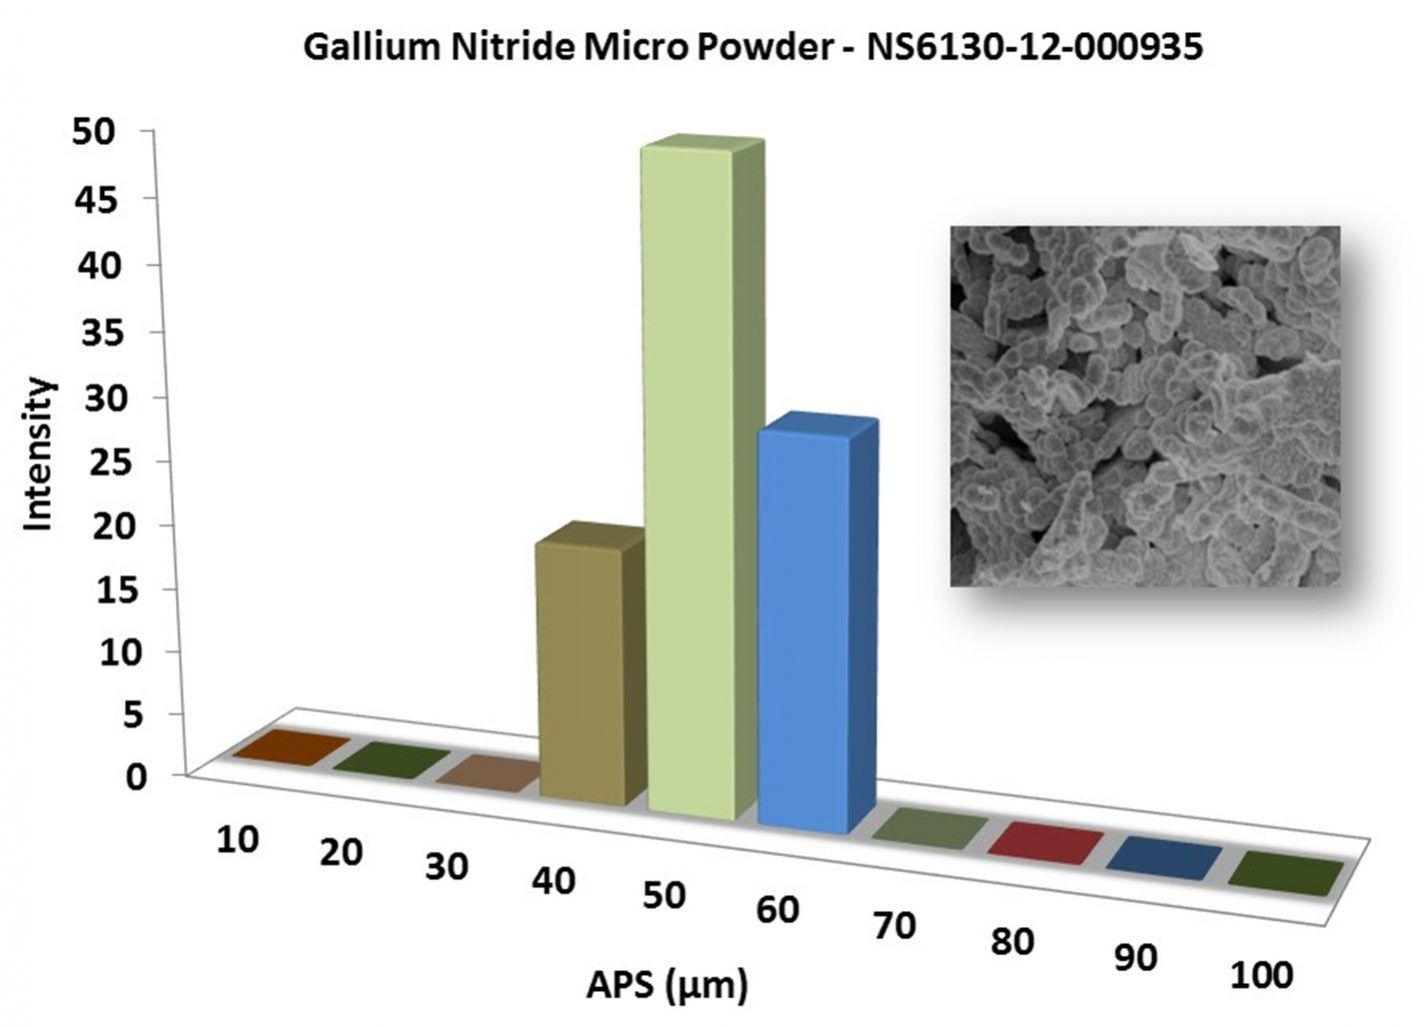 Particles Size Analysis – GaN Powder